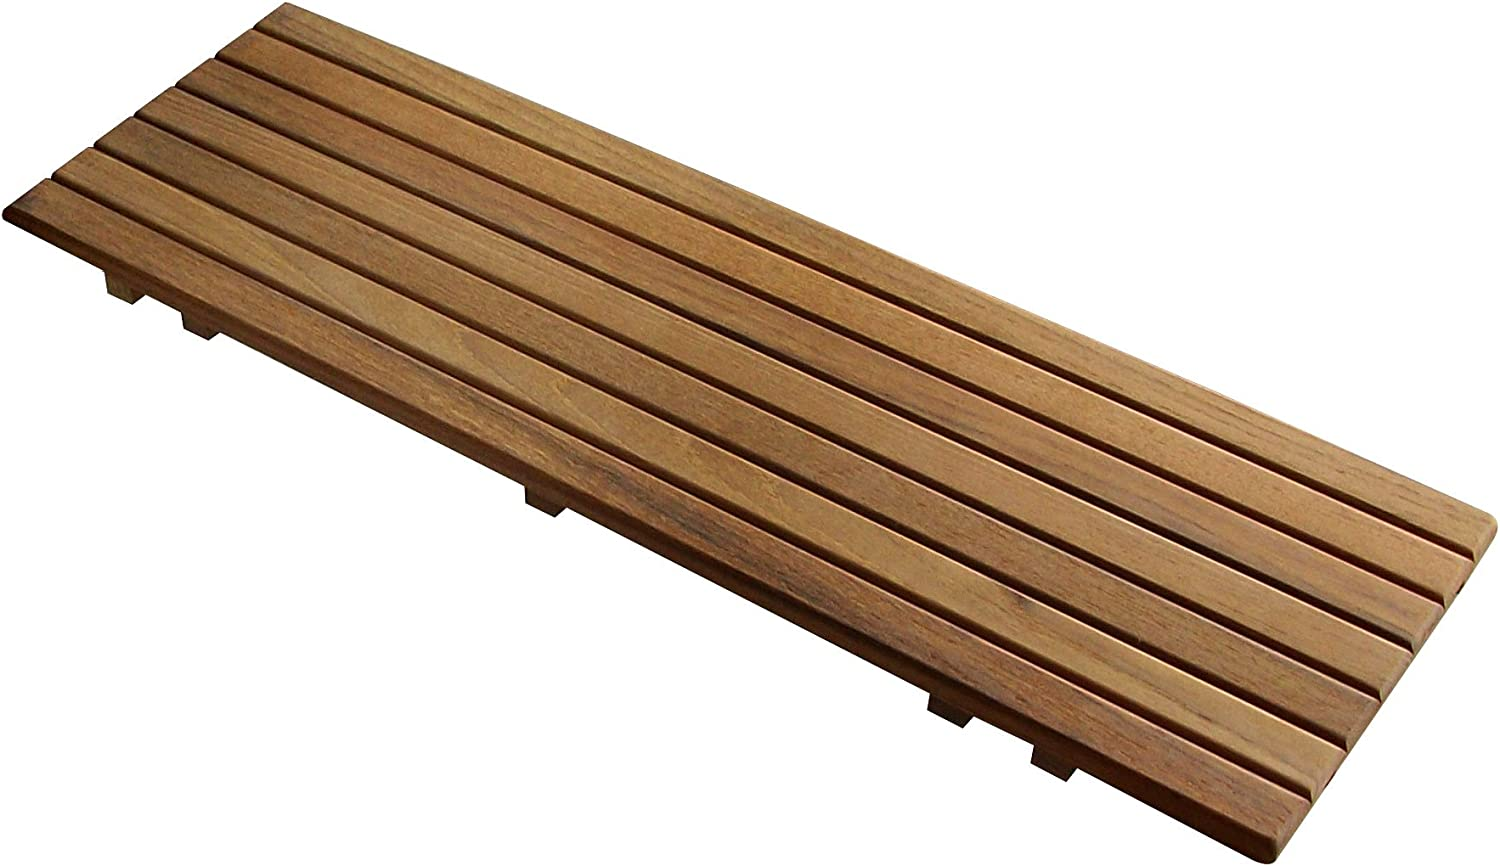 "Adjustable Teak Bathtub Shelf Seat | for tubs from 20-1/4"" to 28-1/2"" Wide 